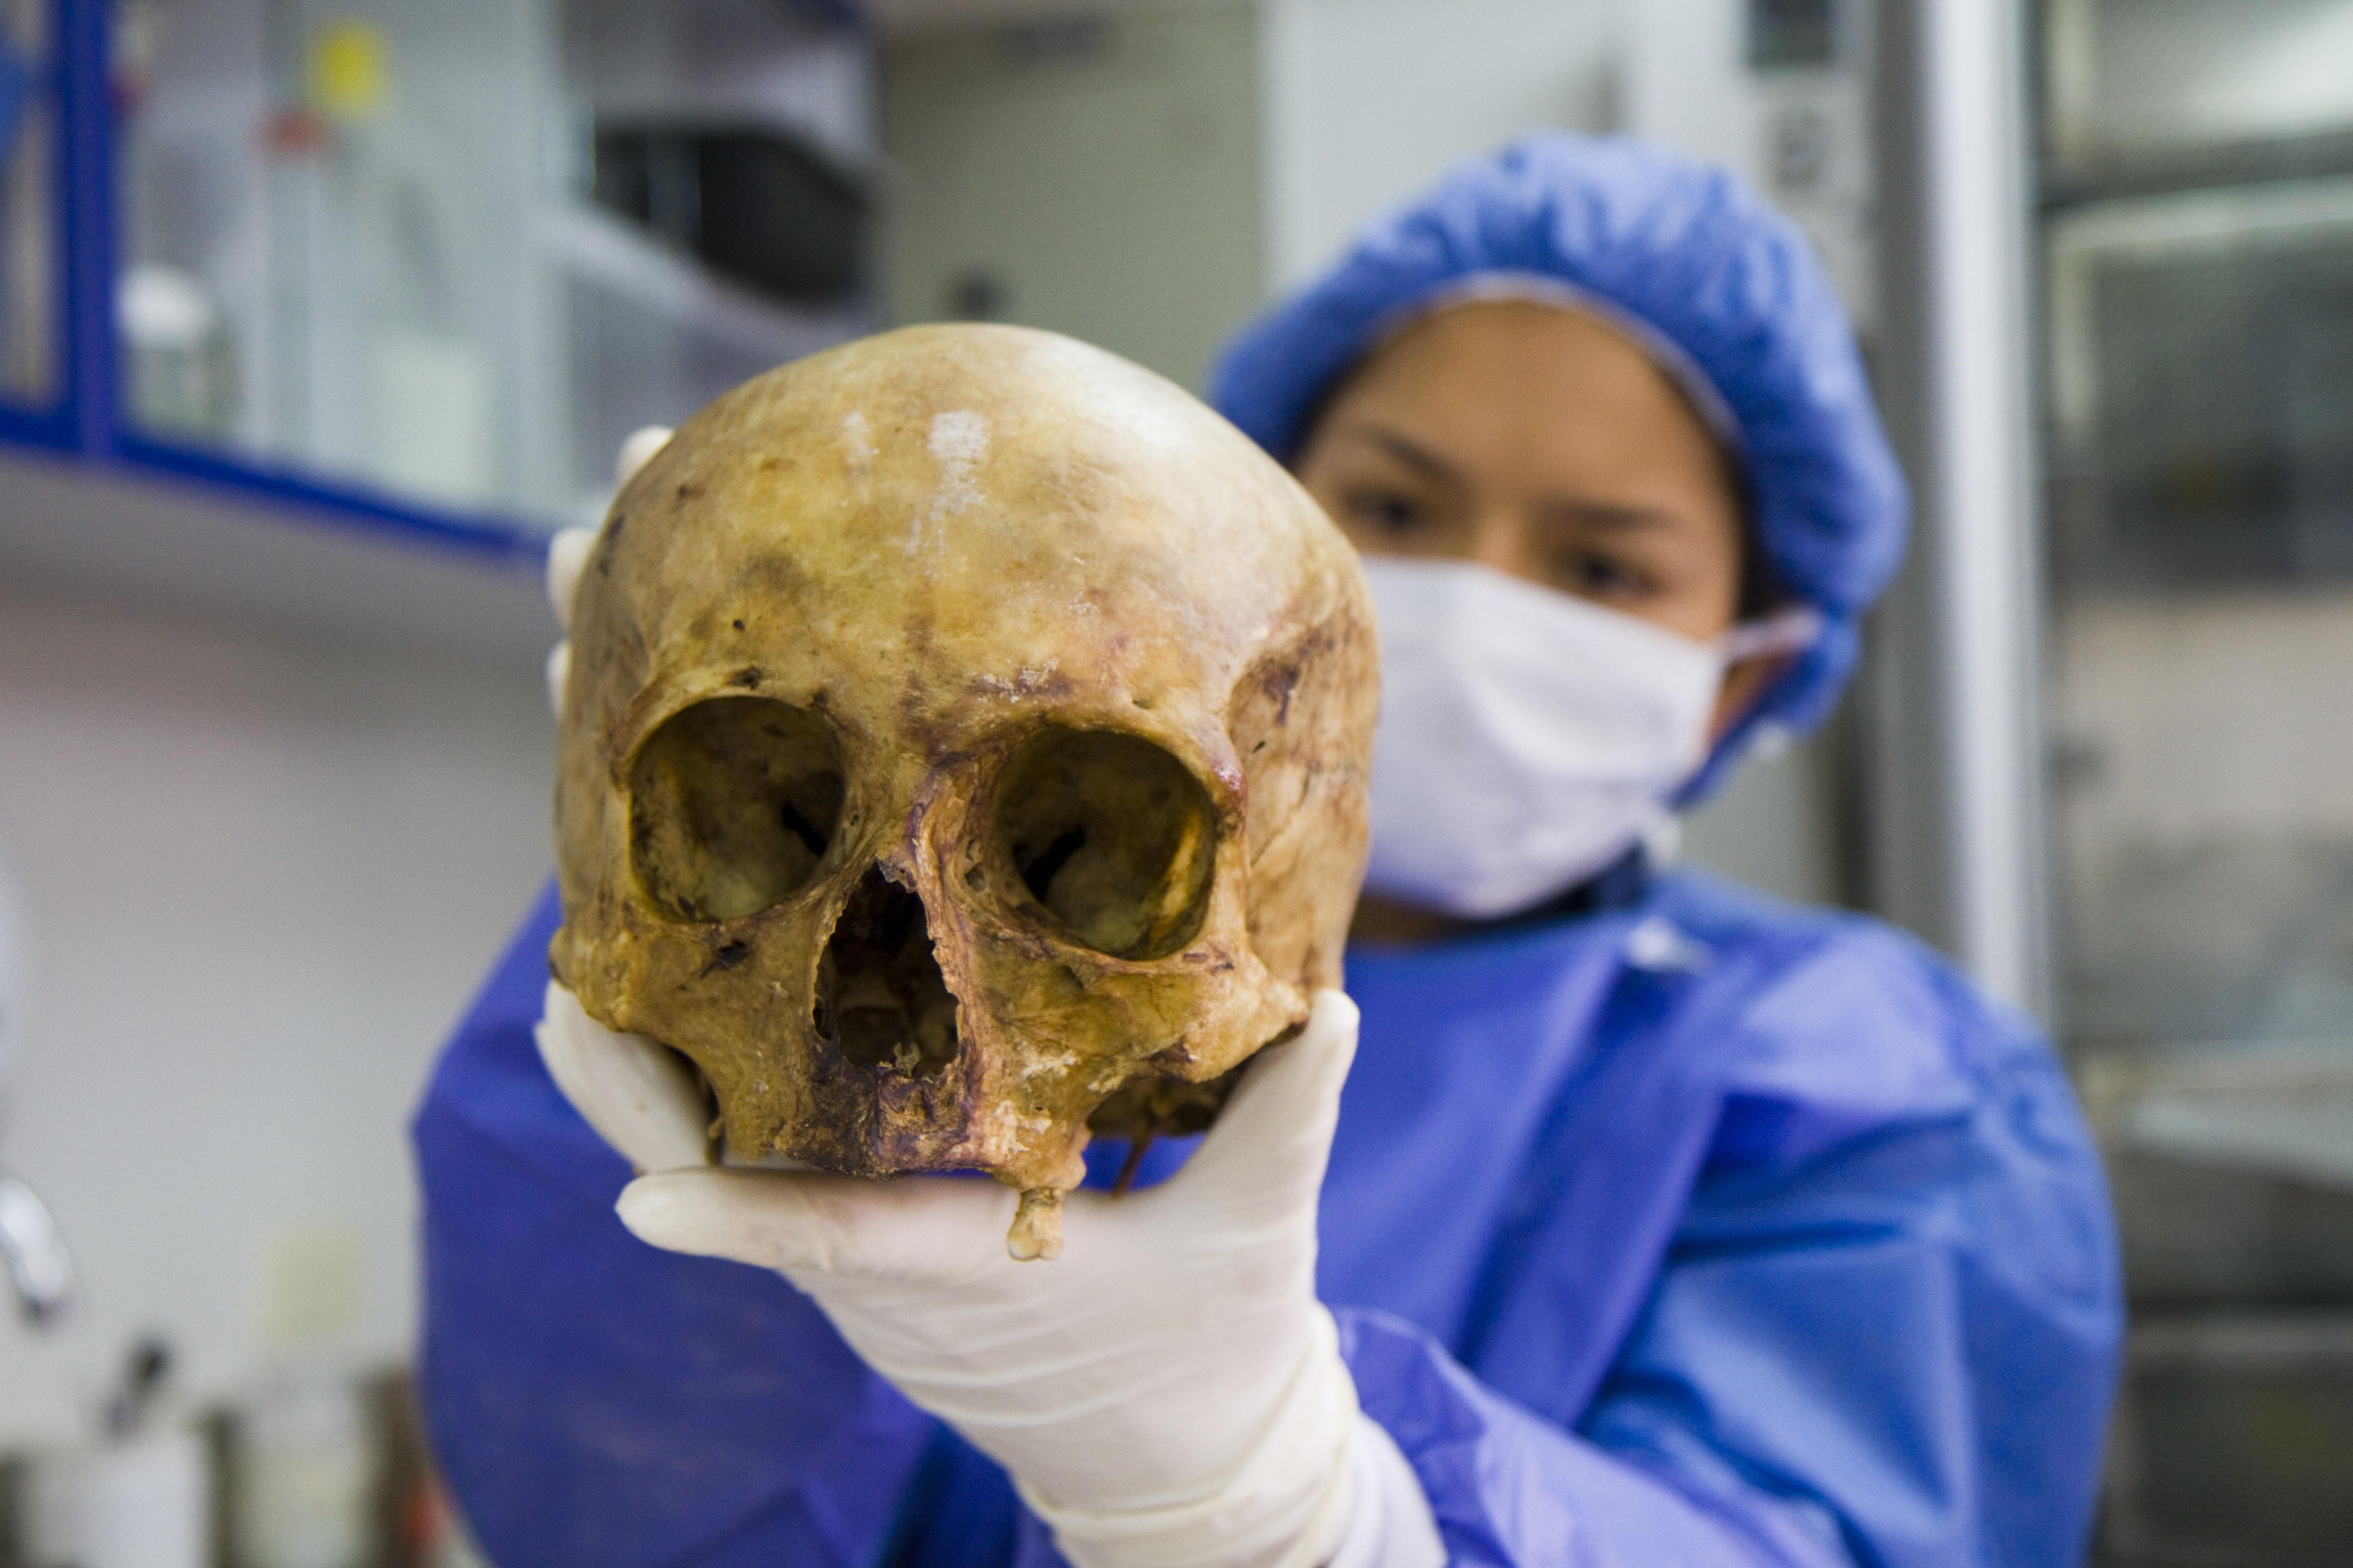 A women wearing laboratory over-clothes holds up a human skull